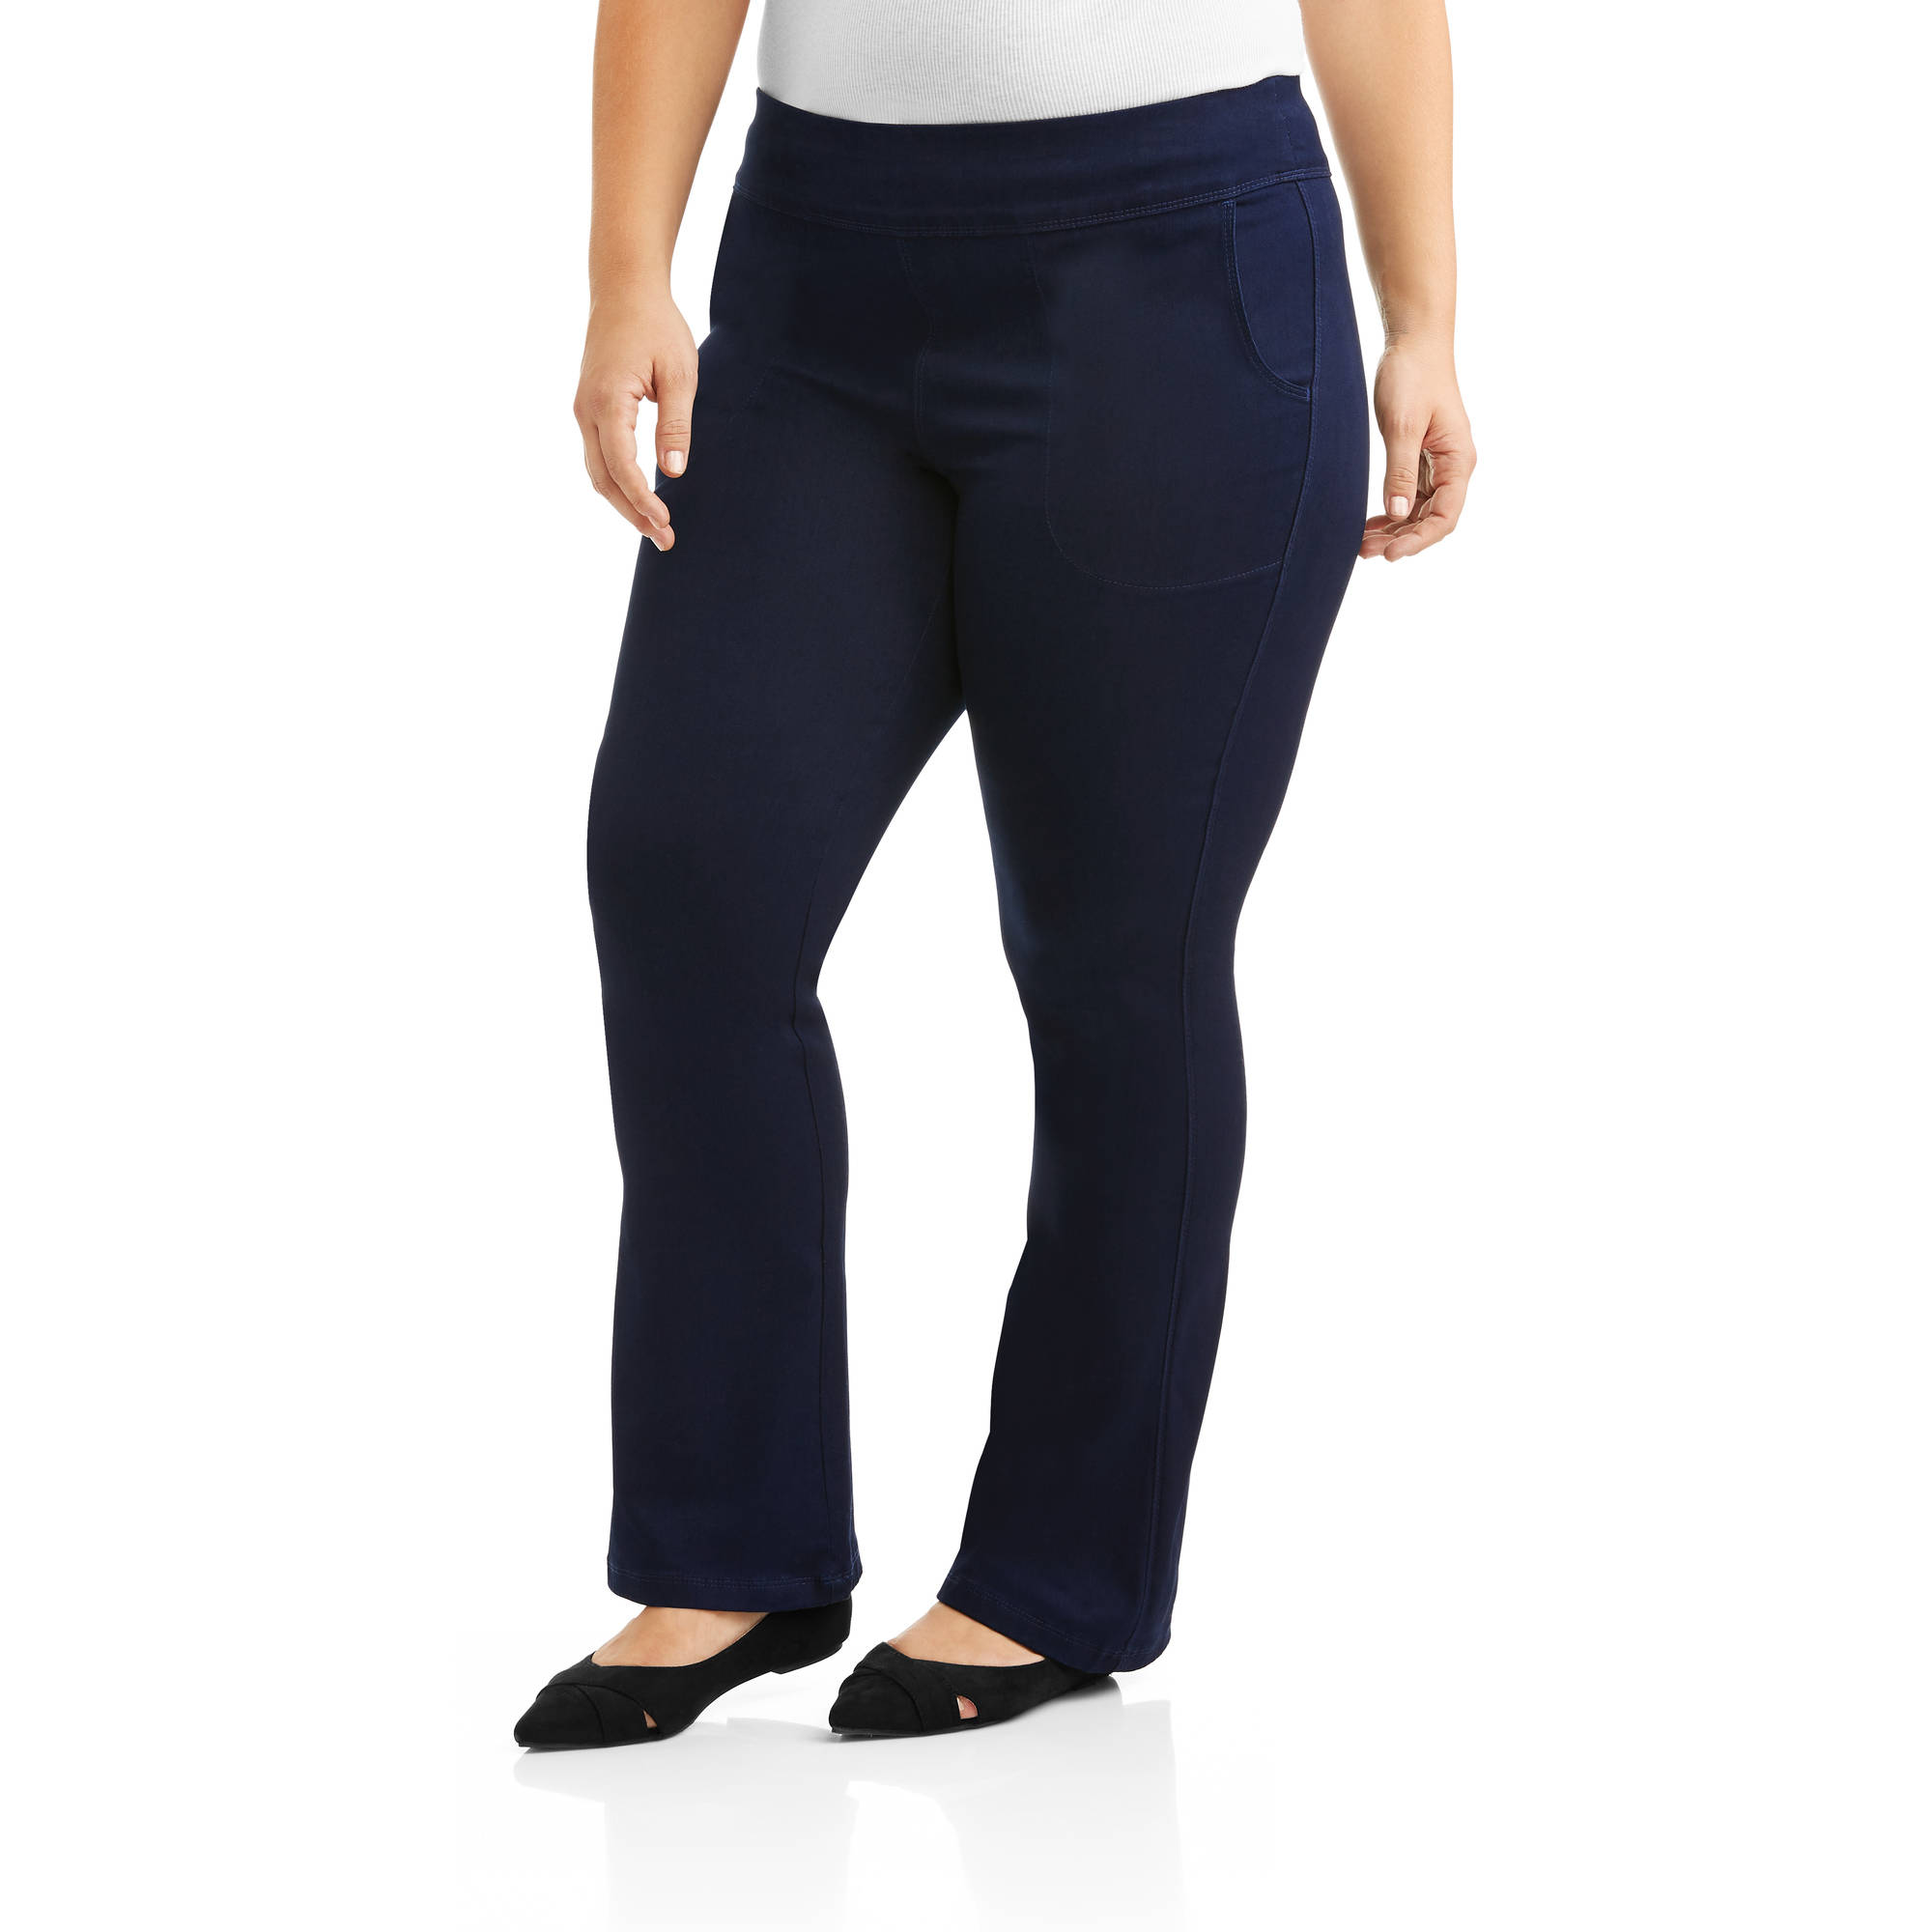 Just My Size Women's Plus-Size Smooth Waist Super Stretchy Pull-On Pants